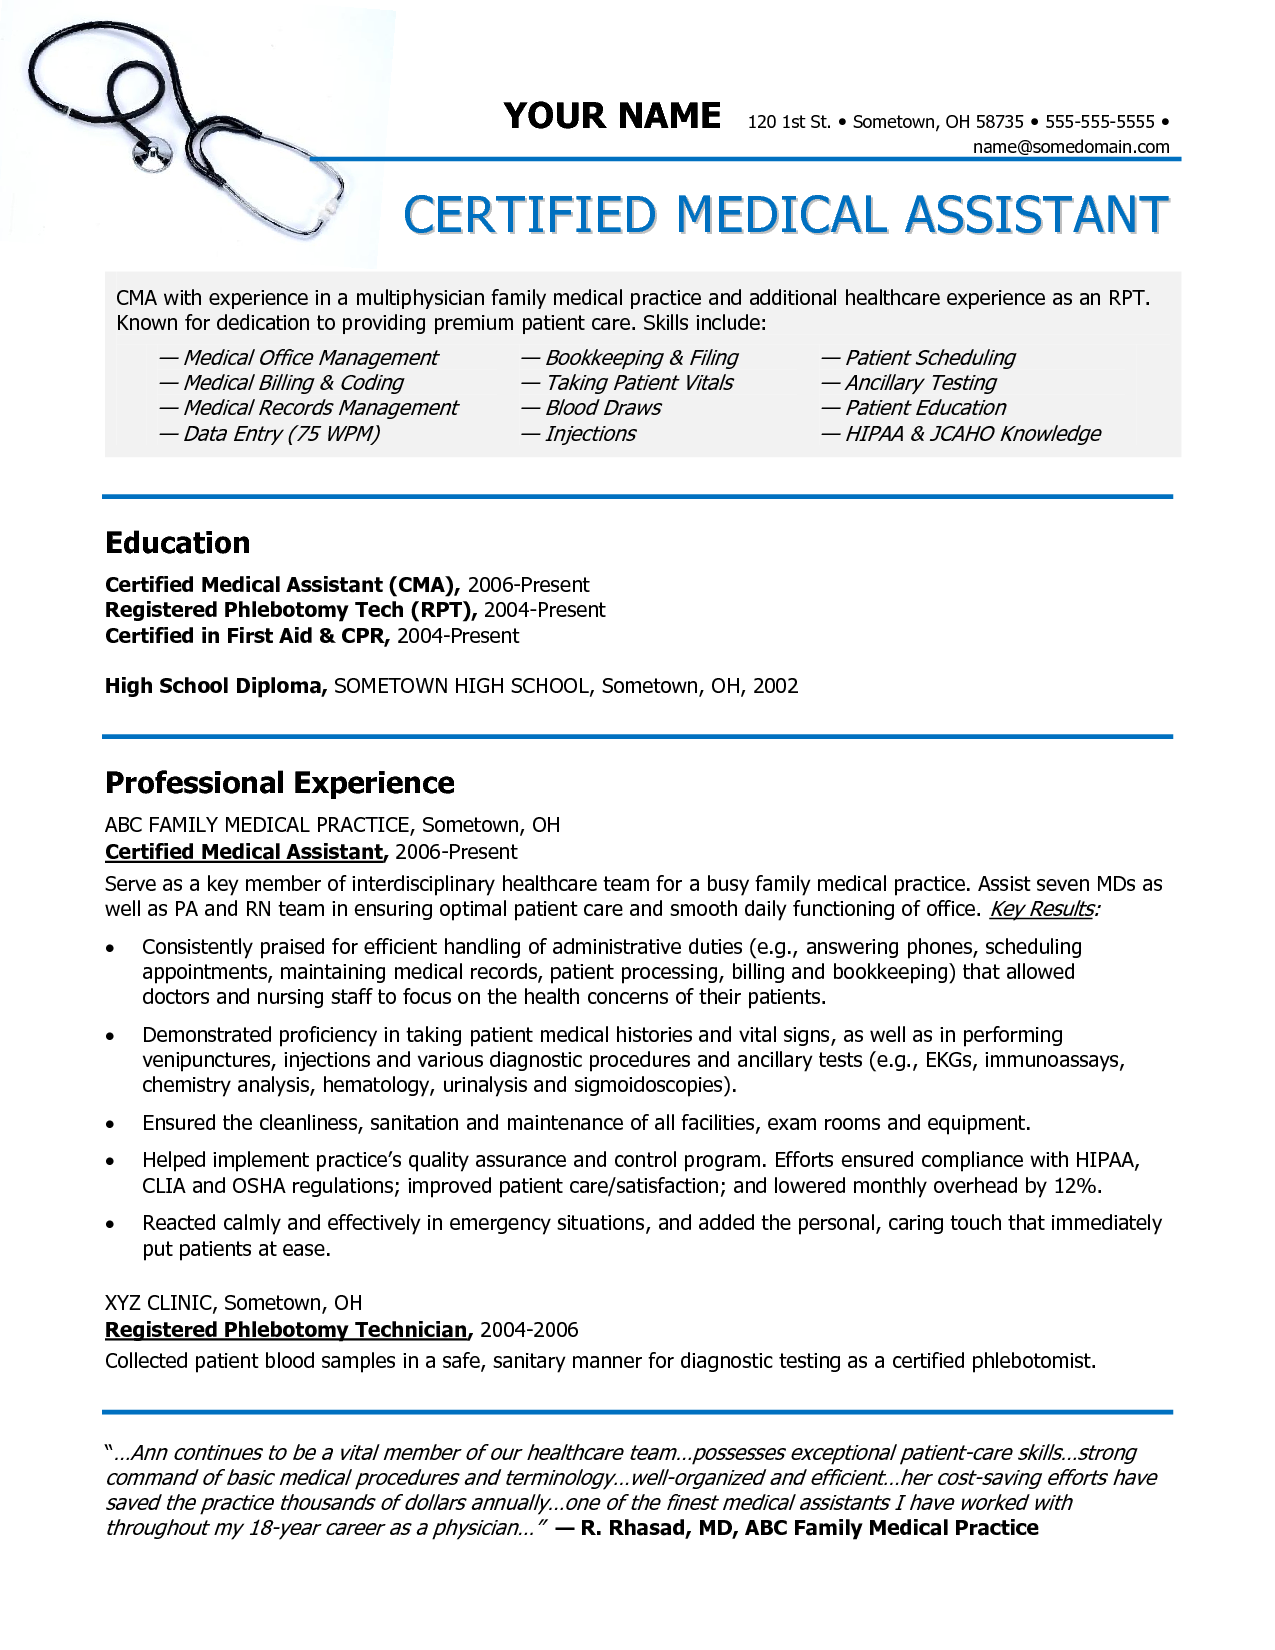 Medical Assistant Resume Entry Level Examples 18 Medical Assistant .  Medical Resume Examples